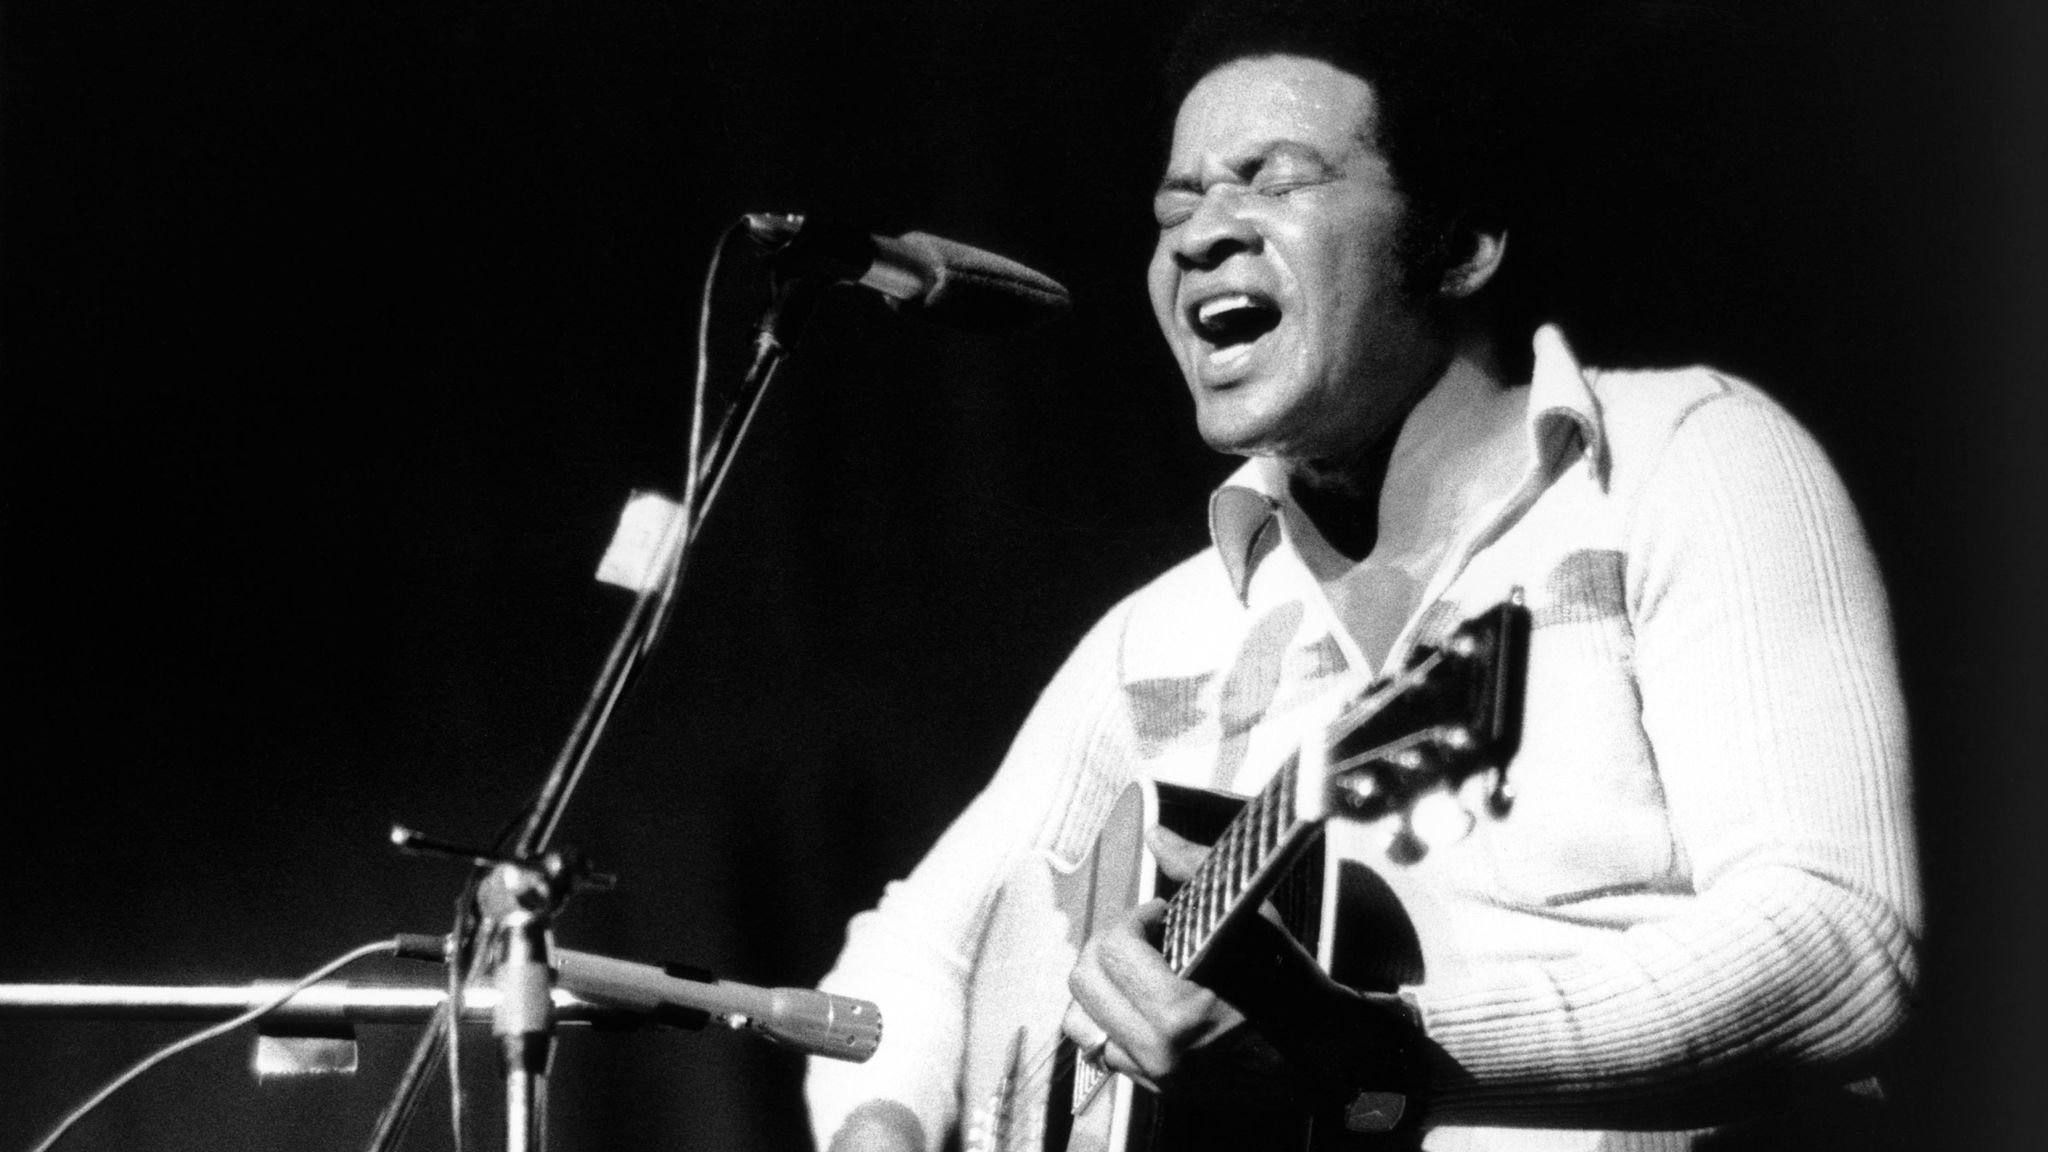 Ain't No Sunshine — Bill Withers never finished writing the